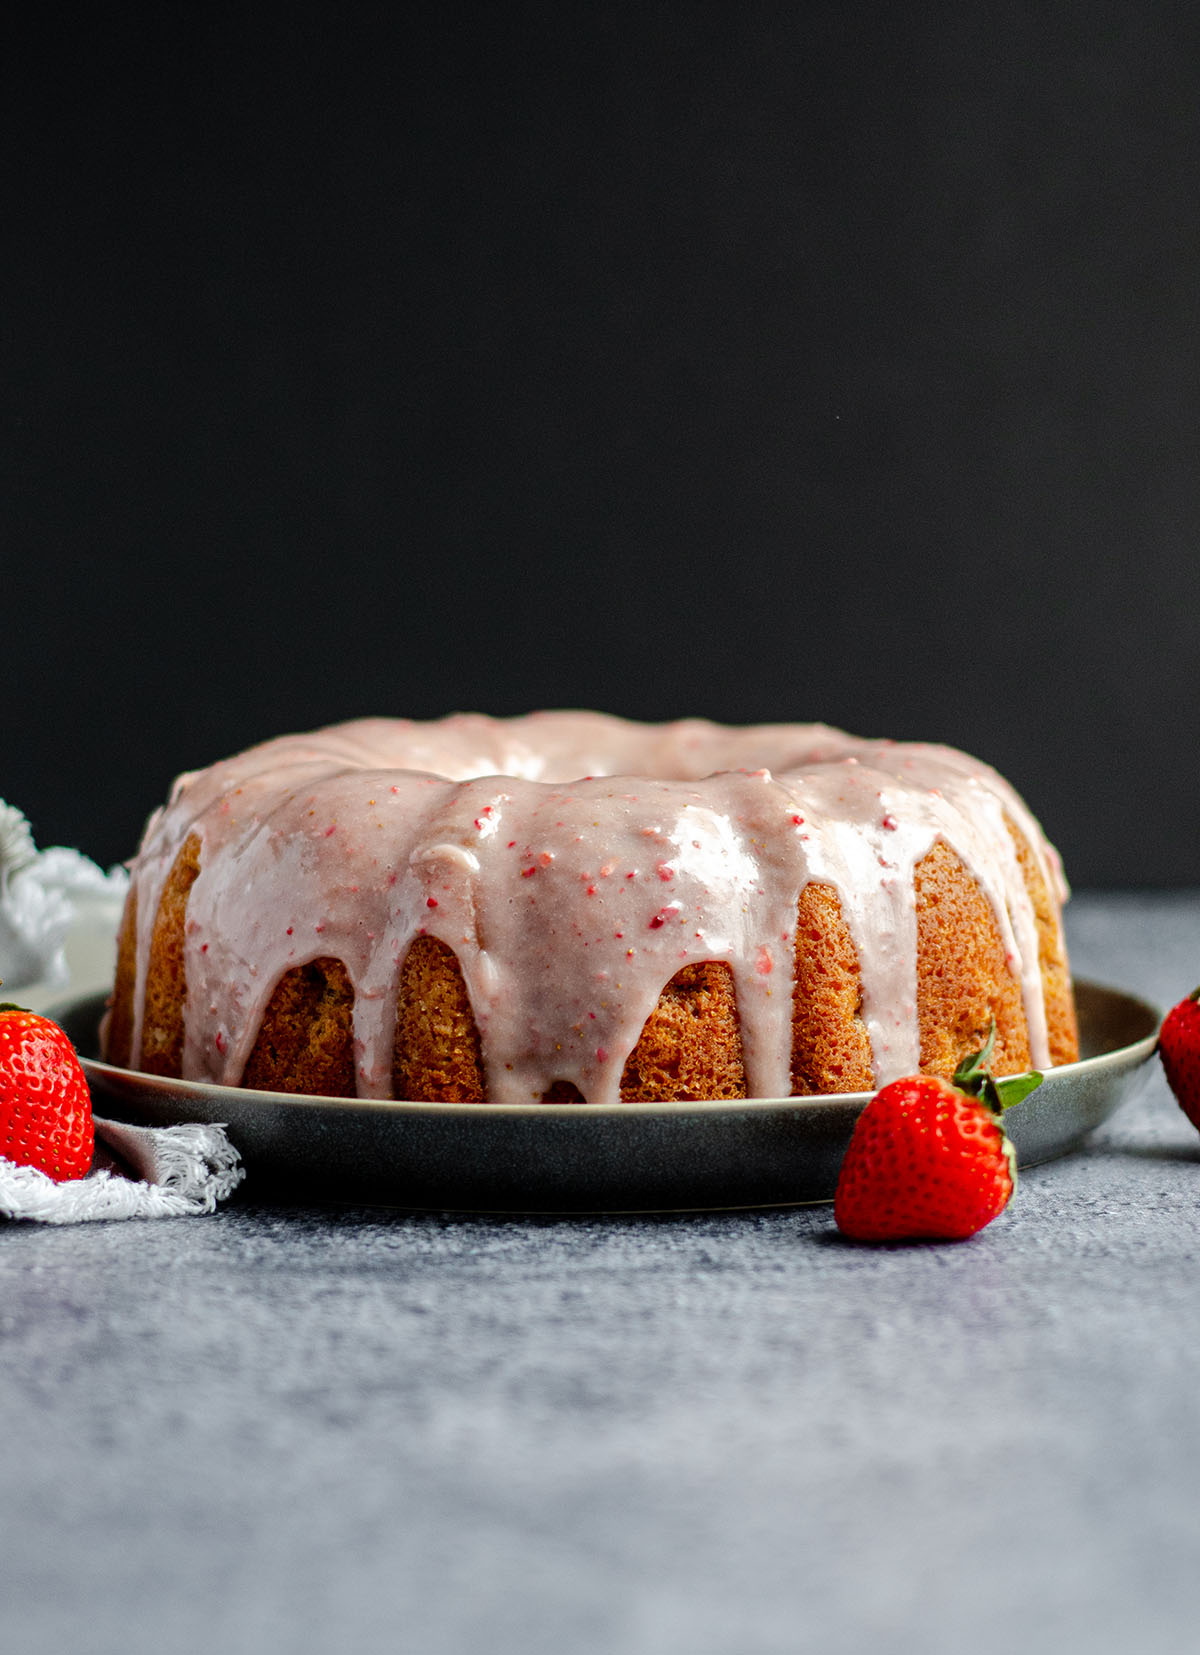 Homemade strawberry bundt cake made from scratch with fresh strawberries and topped with strawberry white chocolate ganache.